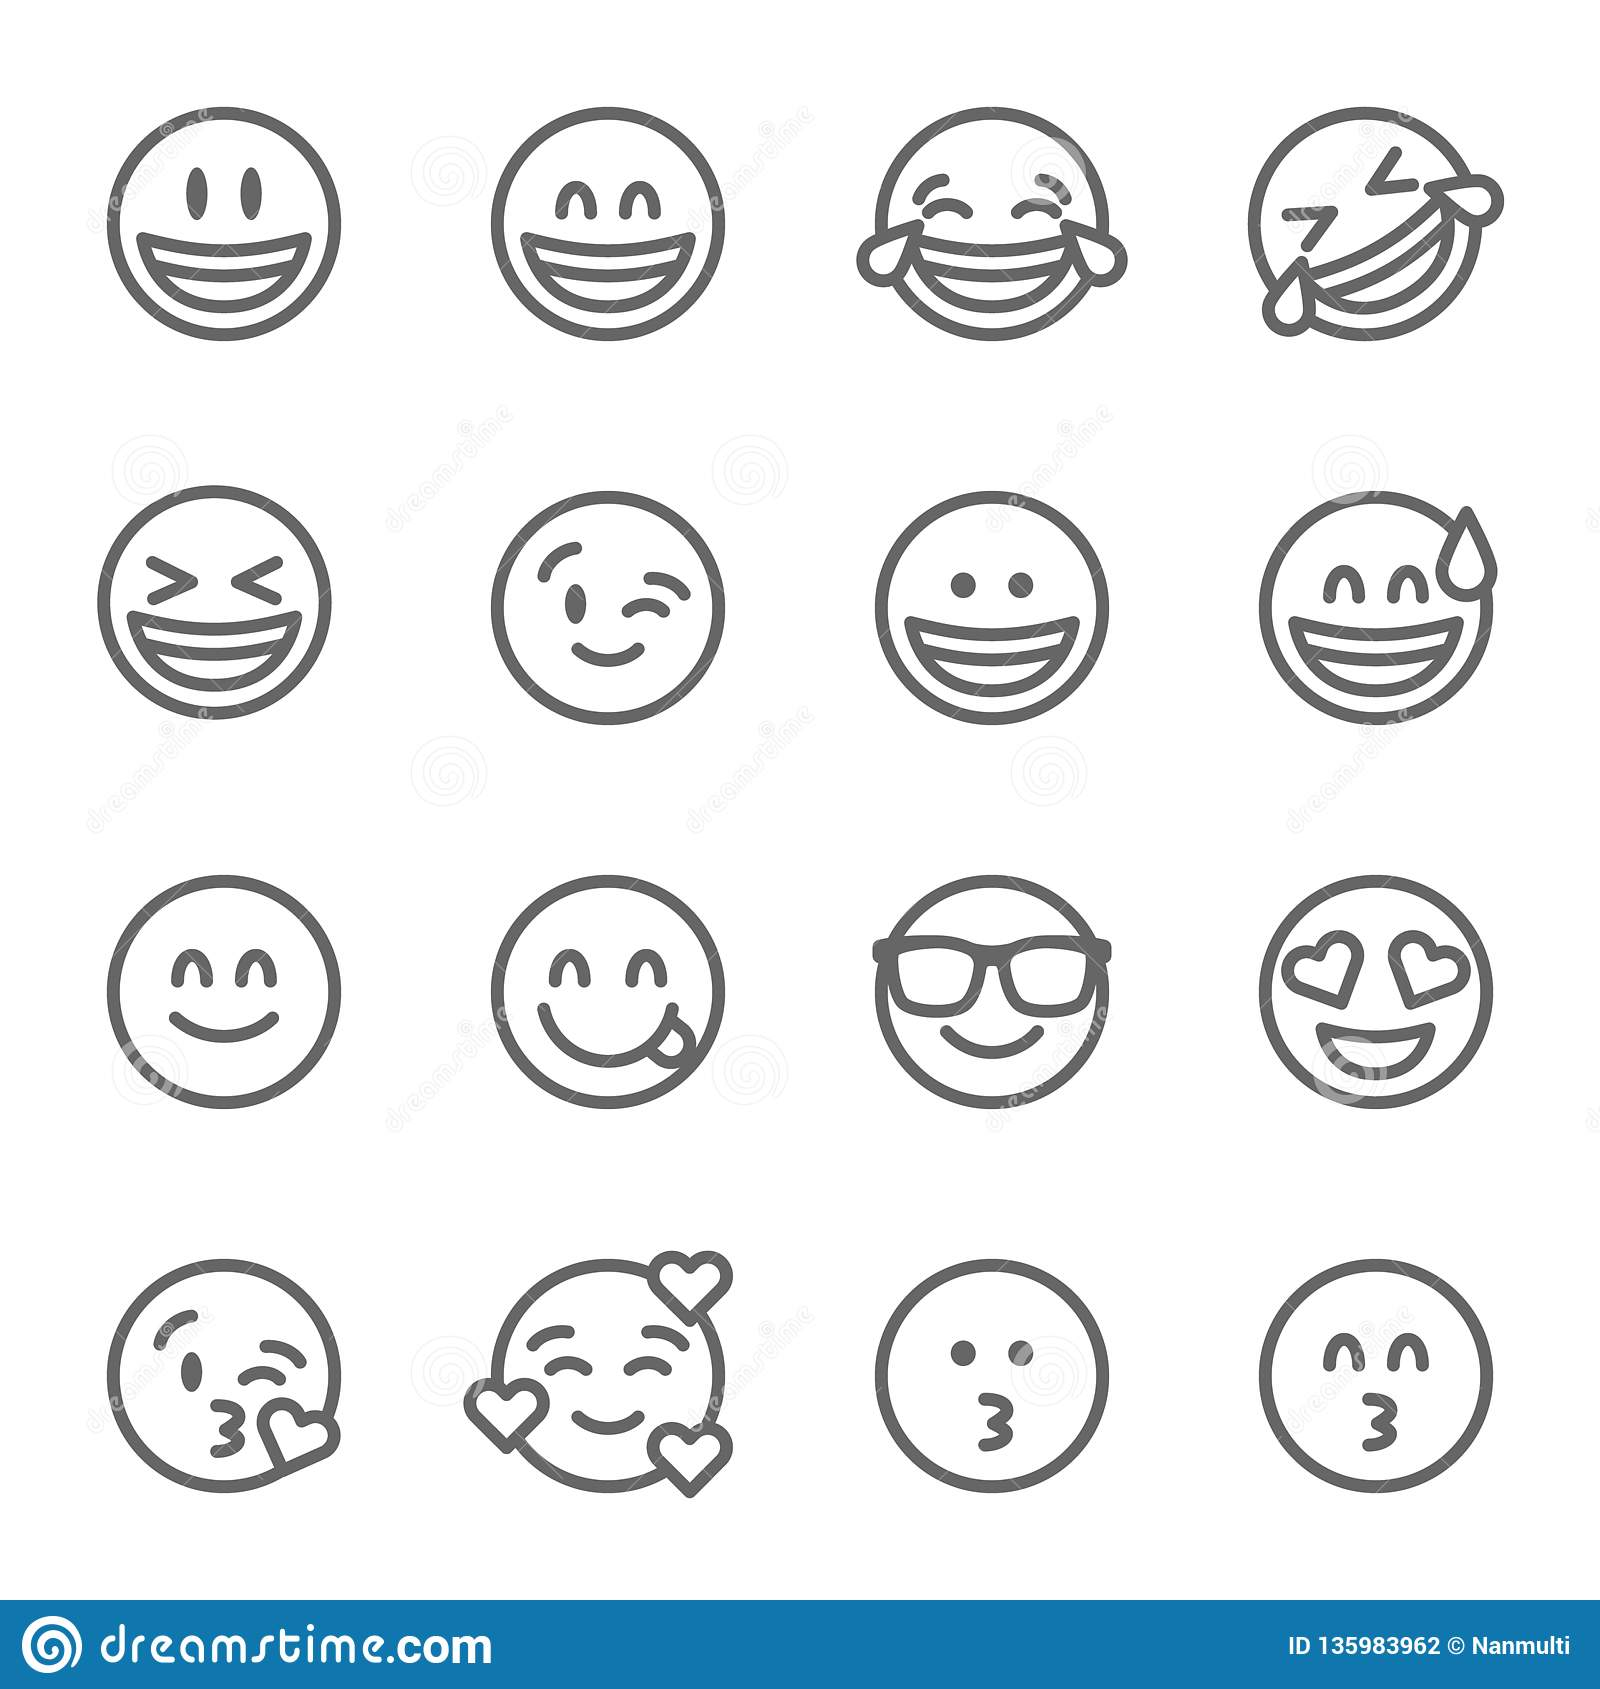 Smiley Face Emoji Vector Line Icon Set. Contains such Icons as Grinning Face, Smiling Face , Savoring and more. Expanded Stroke